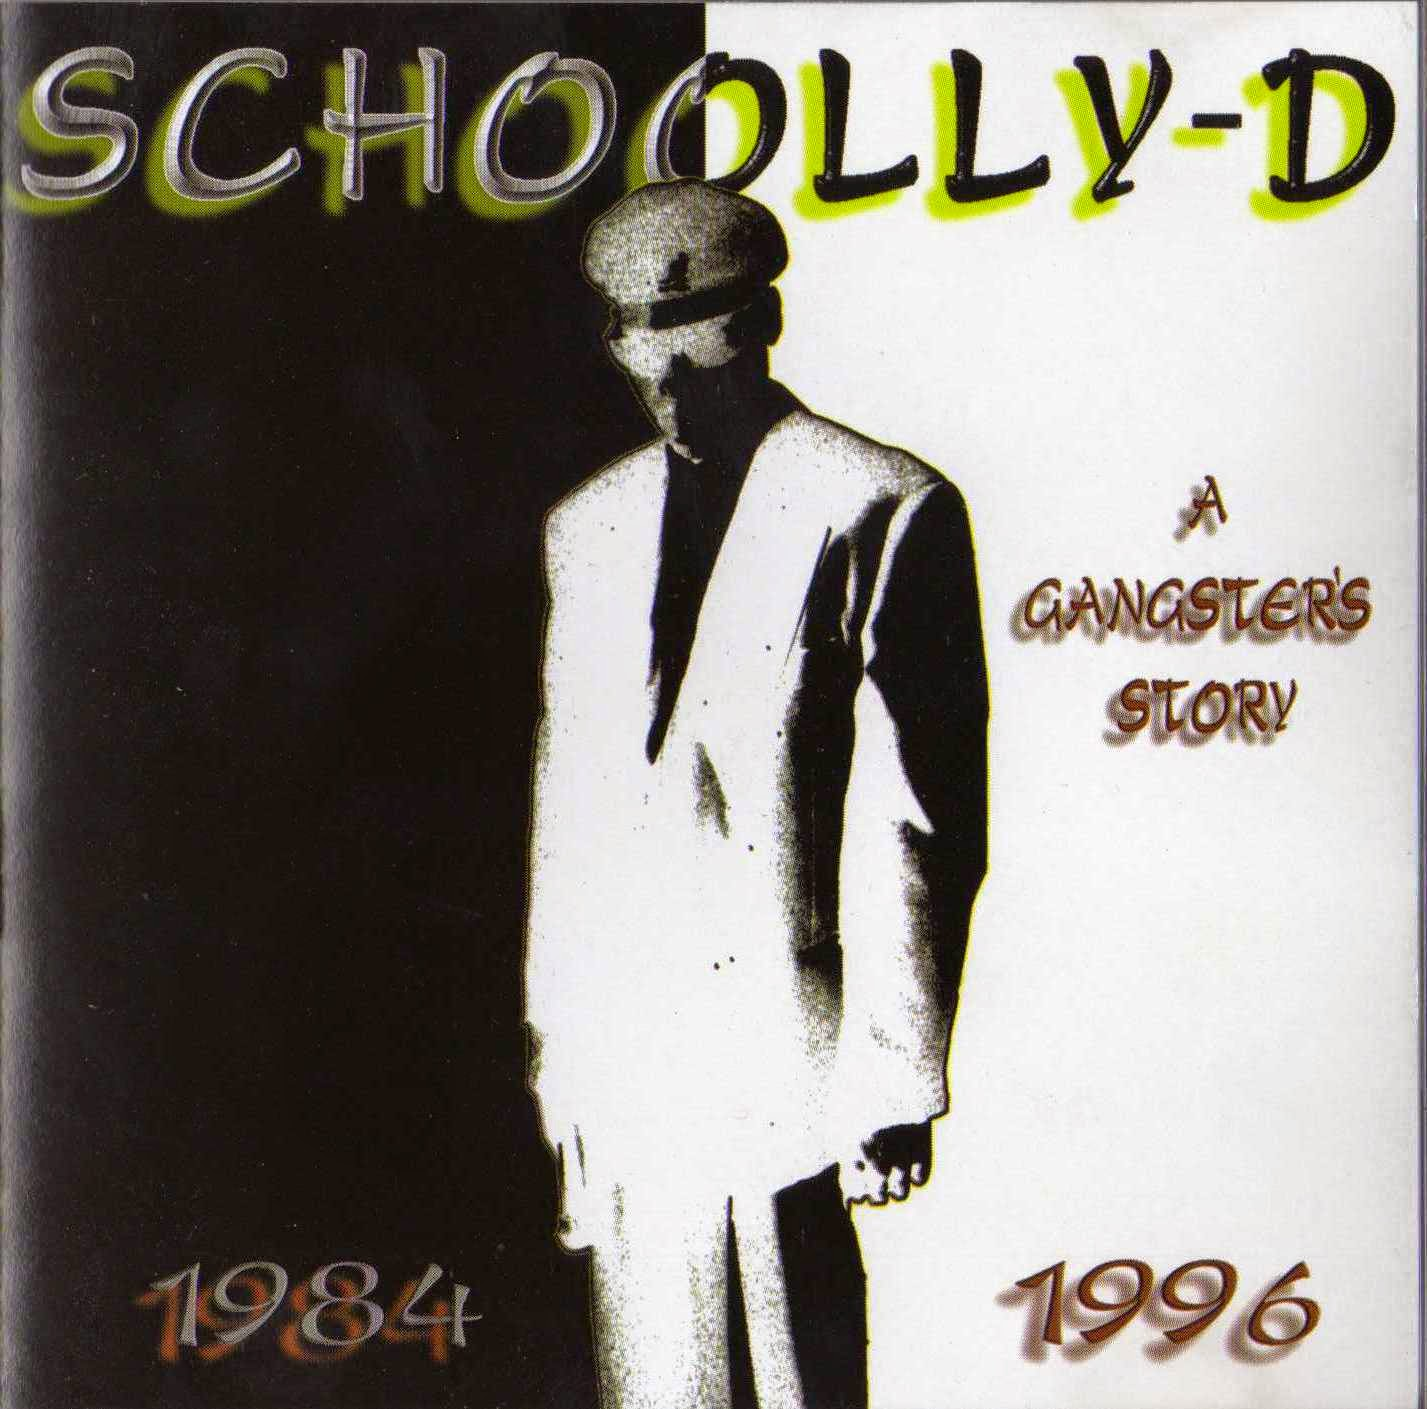 Schoolly-D – A Gangster's Story 1984-1996 (1996) (CD) (FLAC + 320 kbps)